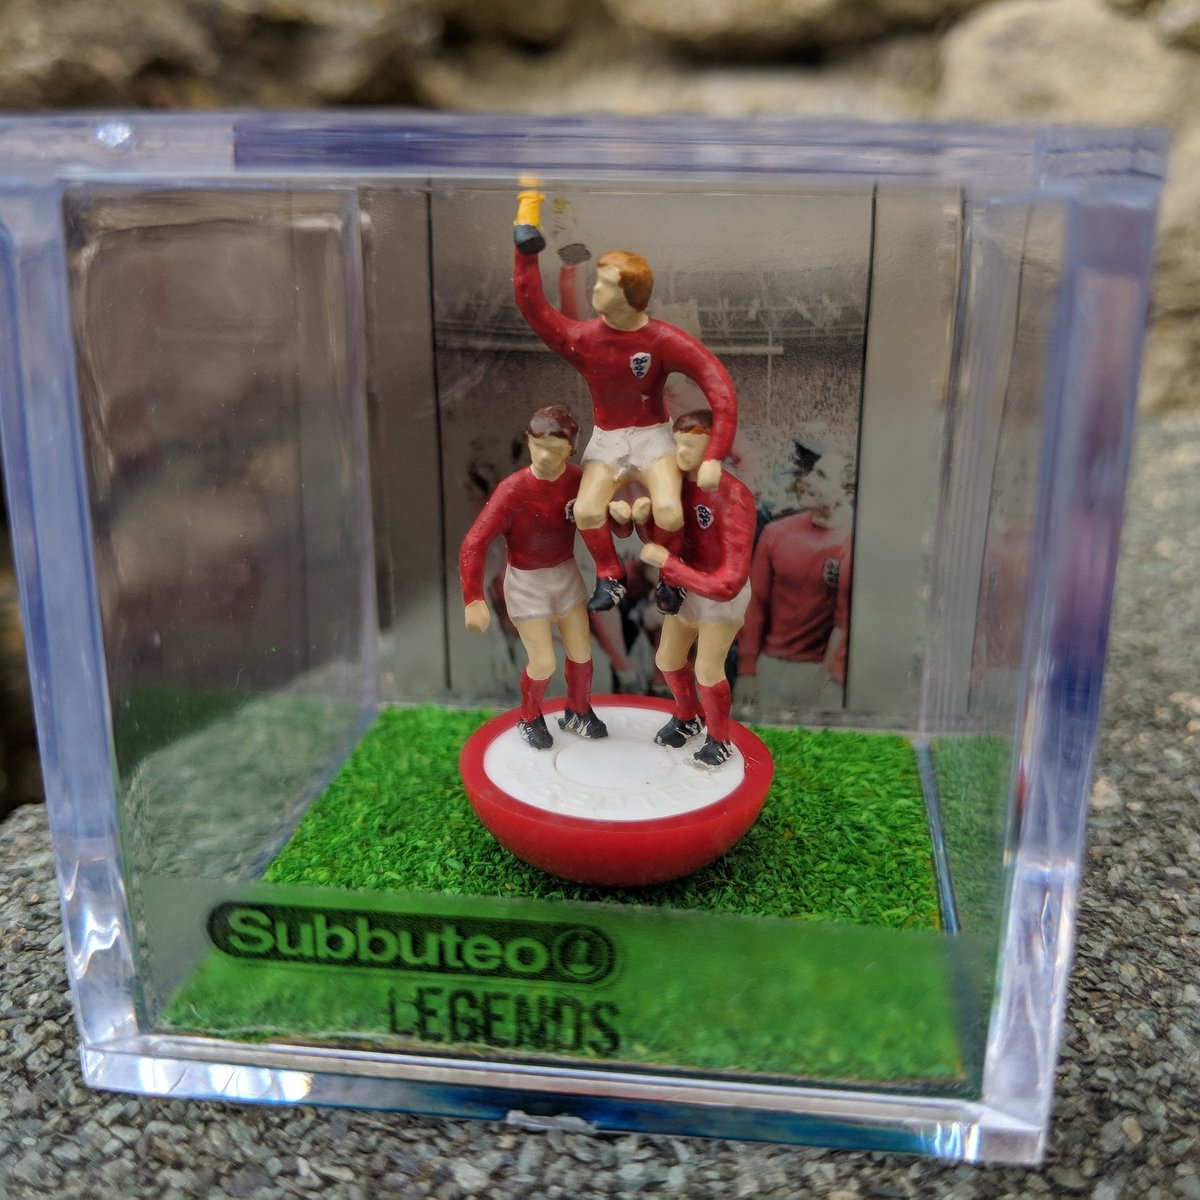 Sad news of Ray Wilson England&#39;s World Cup Winner in 1996 passing away today. #subbuteolegends #Subbuteo #worldcup1966 #raywilson <br>http://pic.twitter.com/khpaG0HuHO